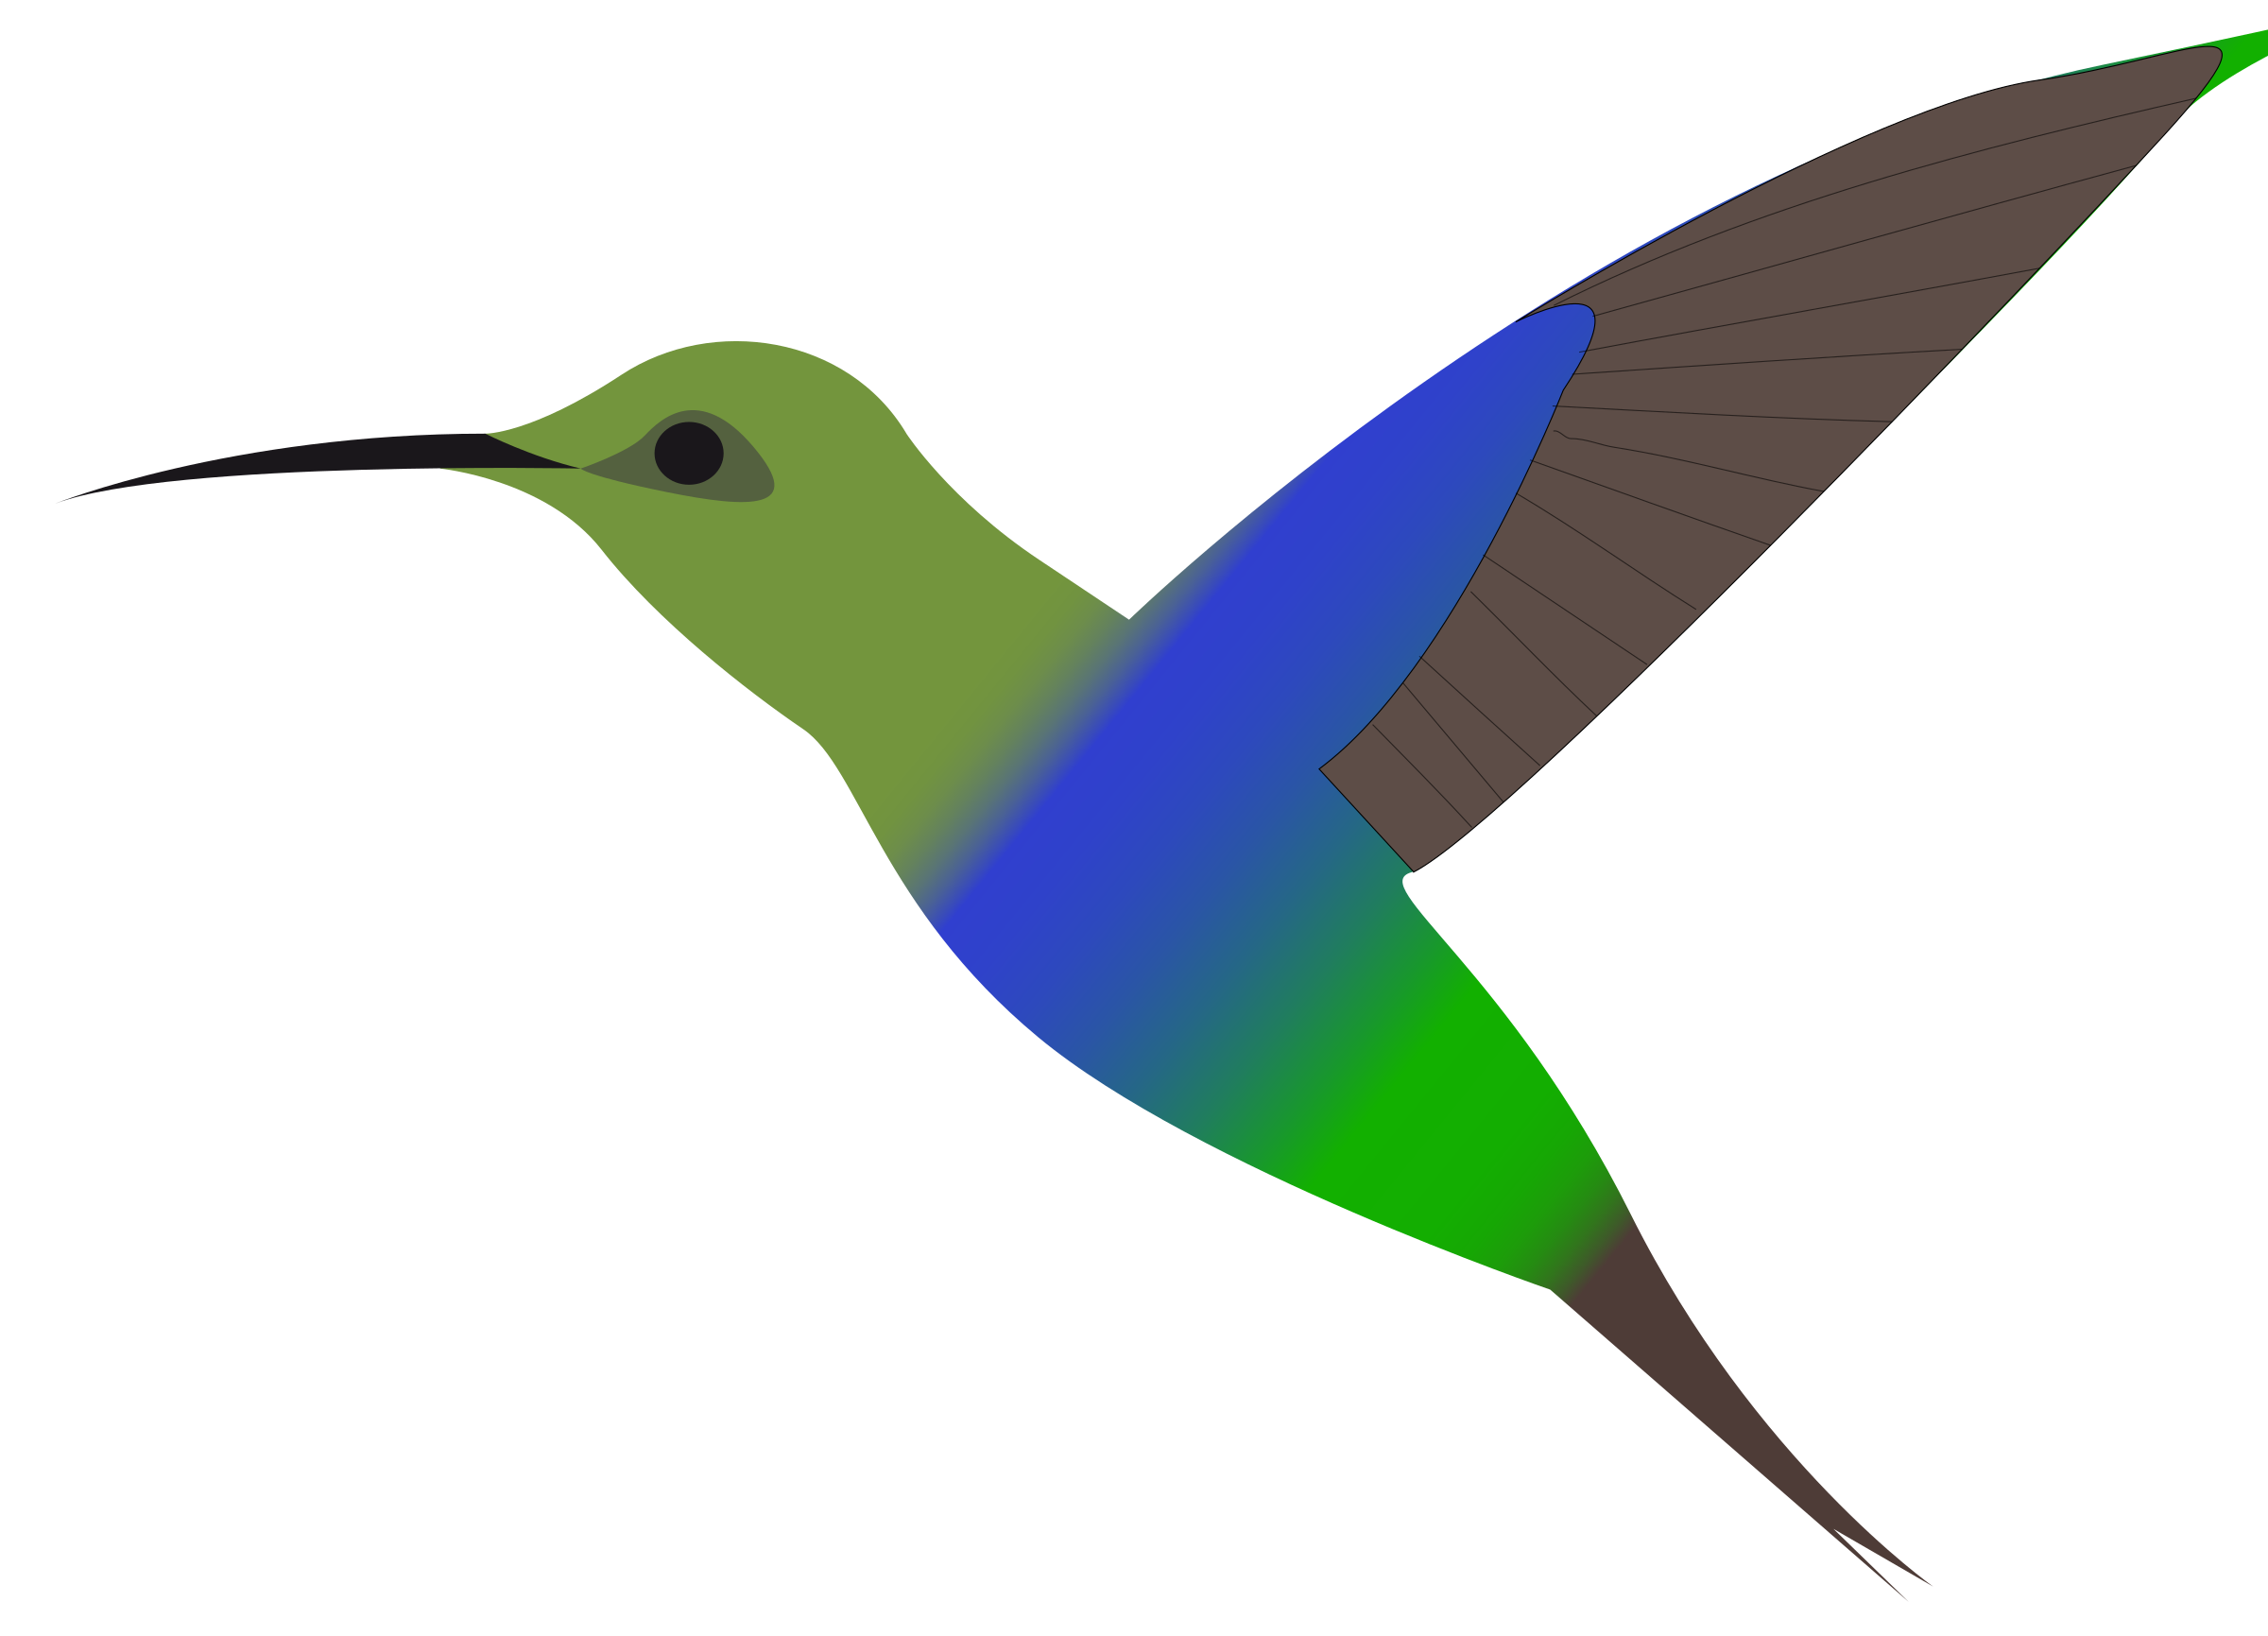 Hummingbird and flower clipart clip royalty free stock Silhouette Hummingbird at GetDrawings.com | Free for personal use ... clip royalty free stock